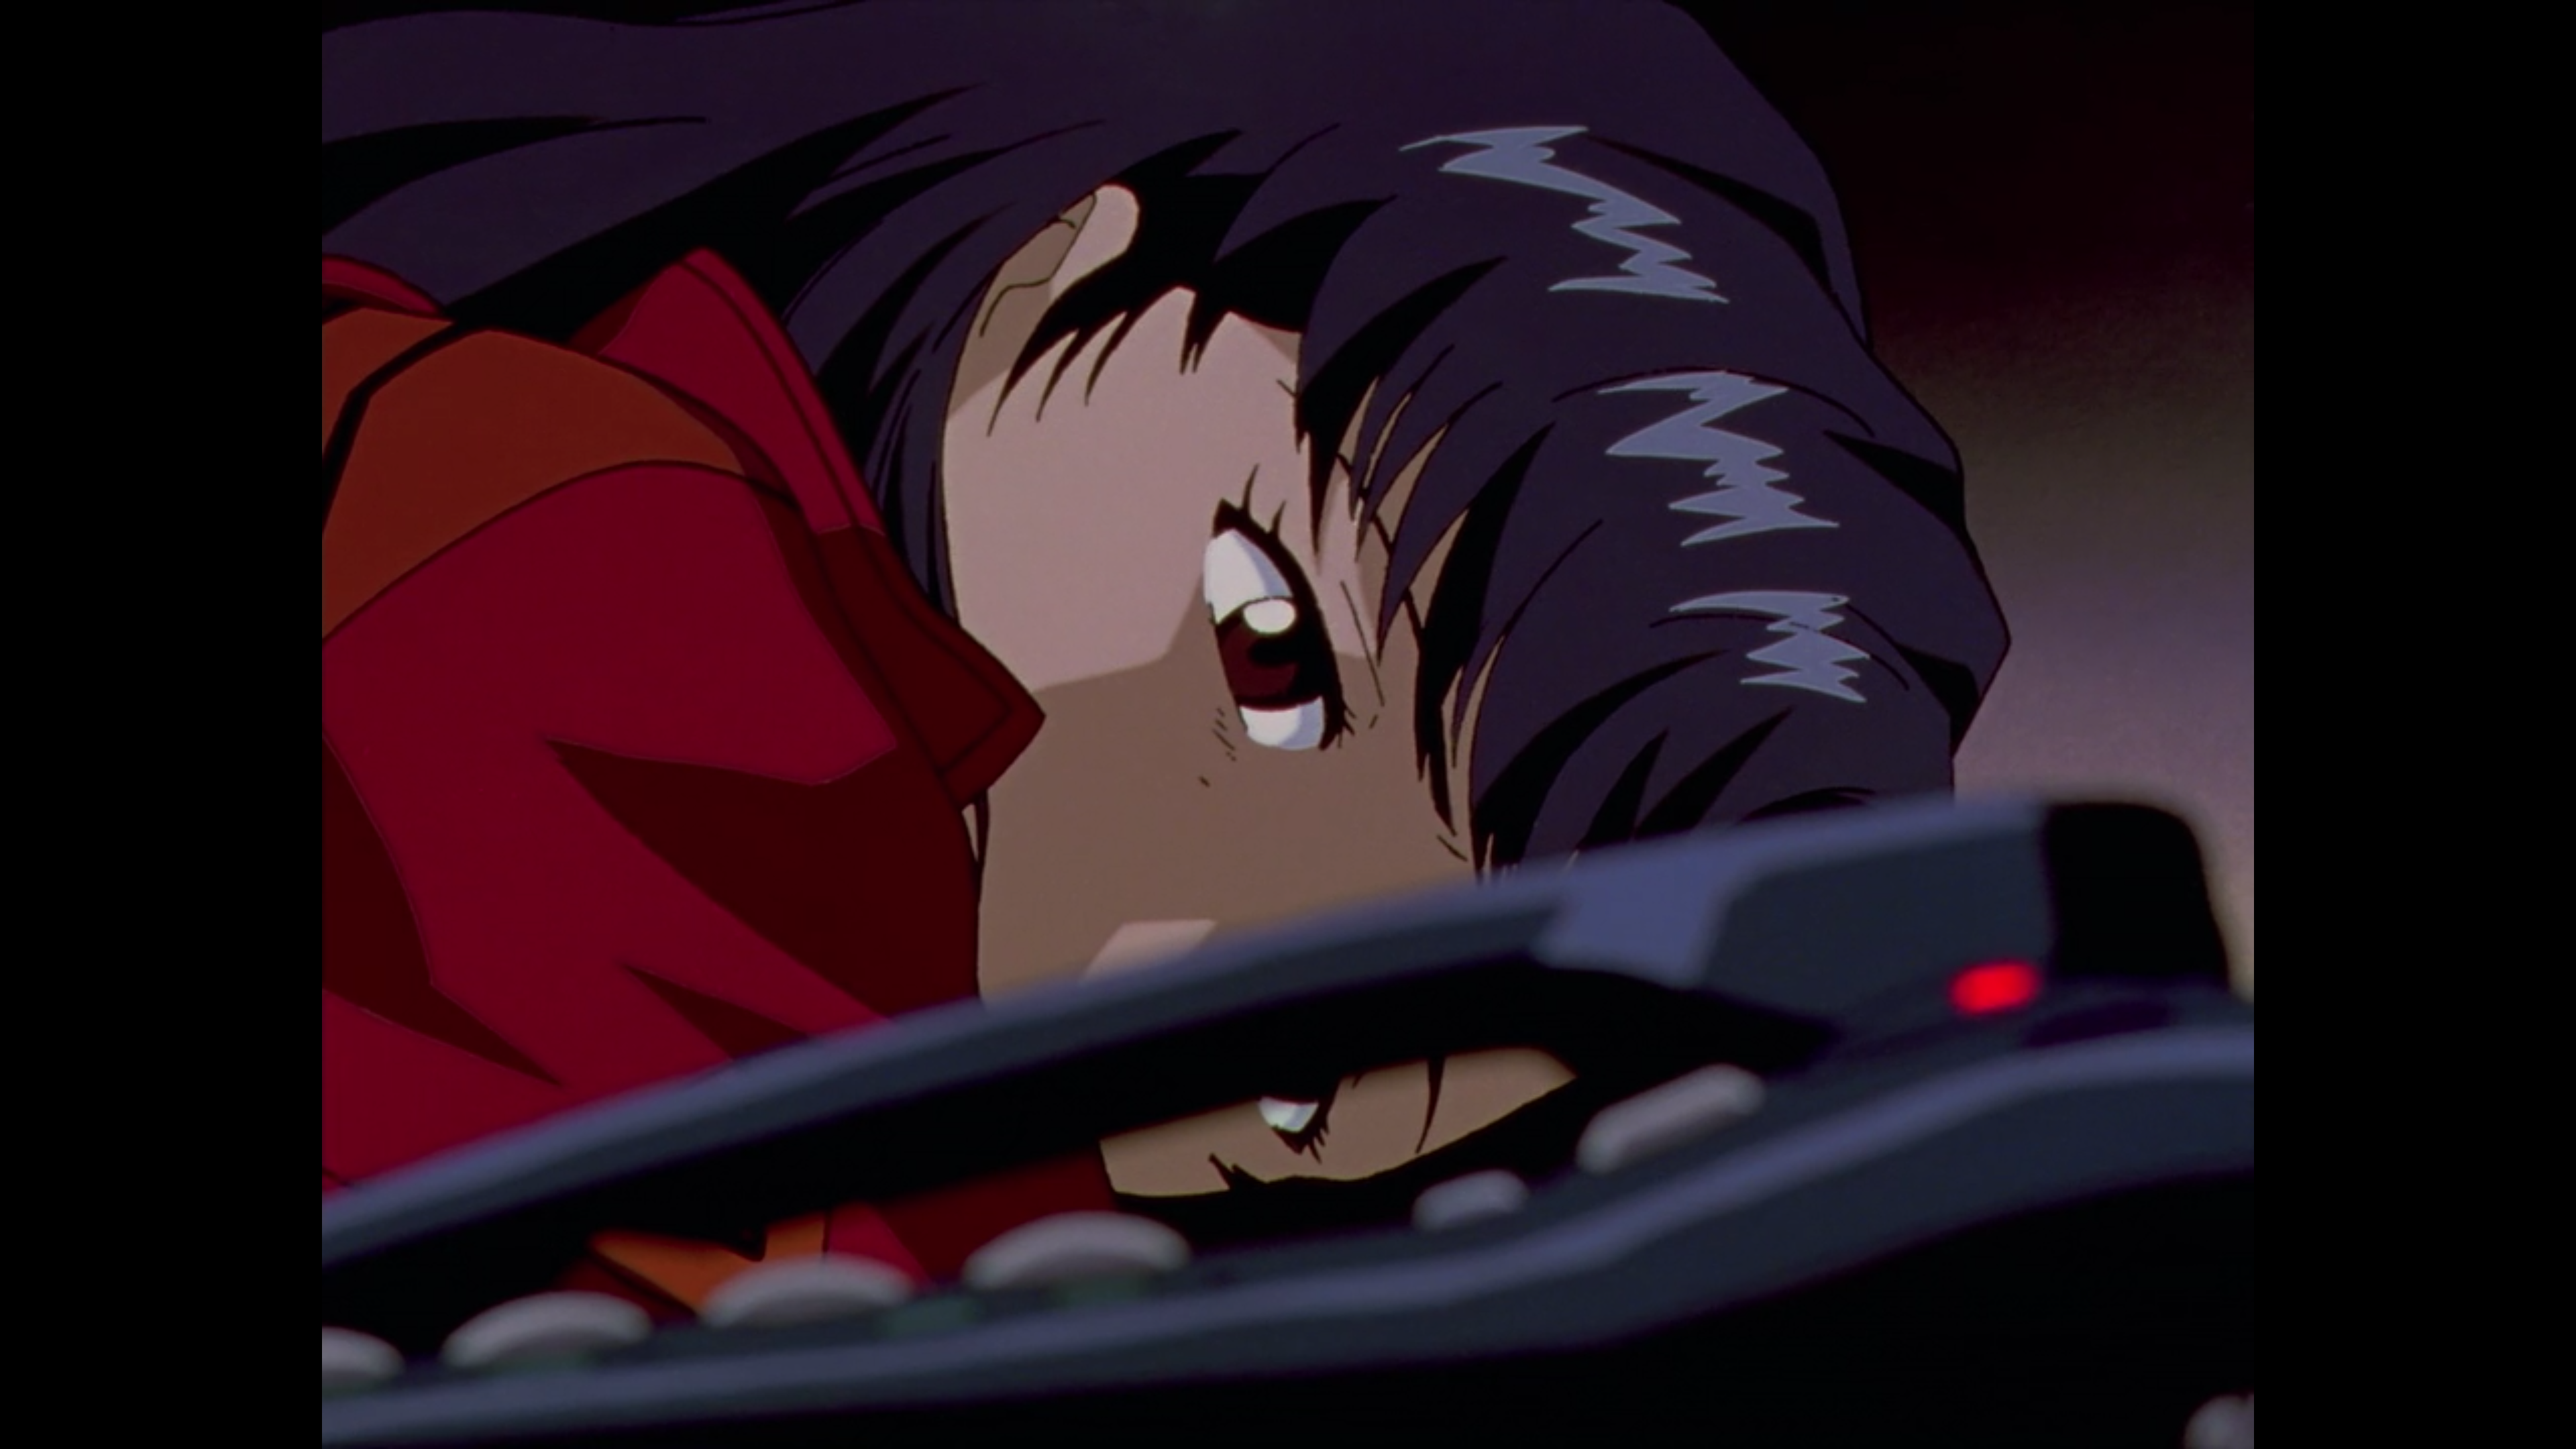 'Evangelion' Ruins One of Its Best Plot Beats With Sexist Tropes - VICE